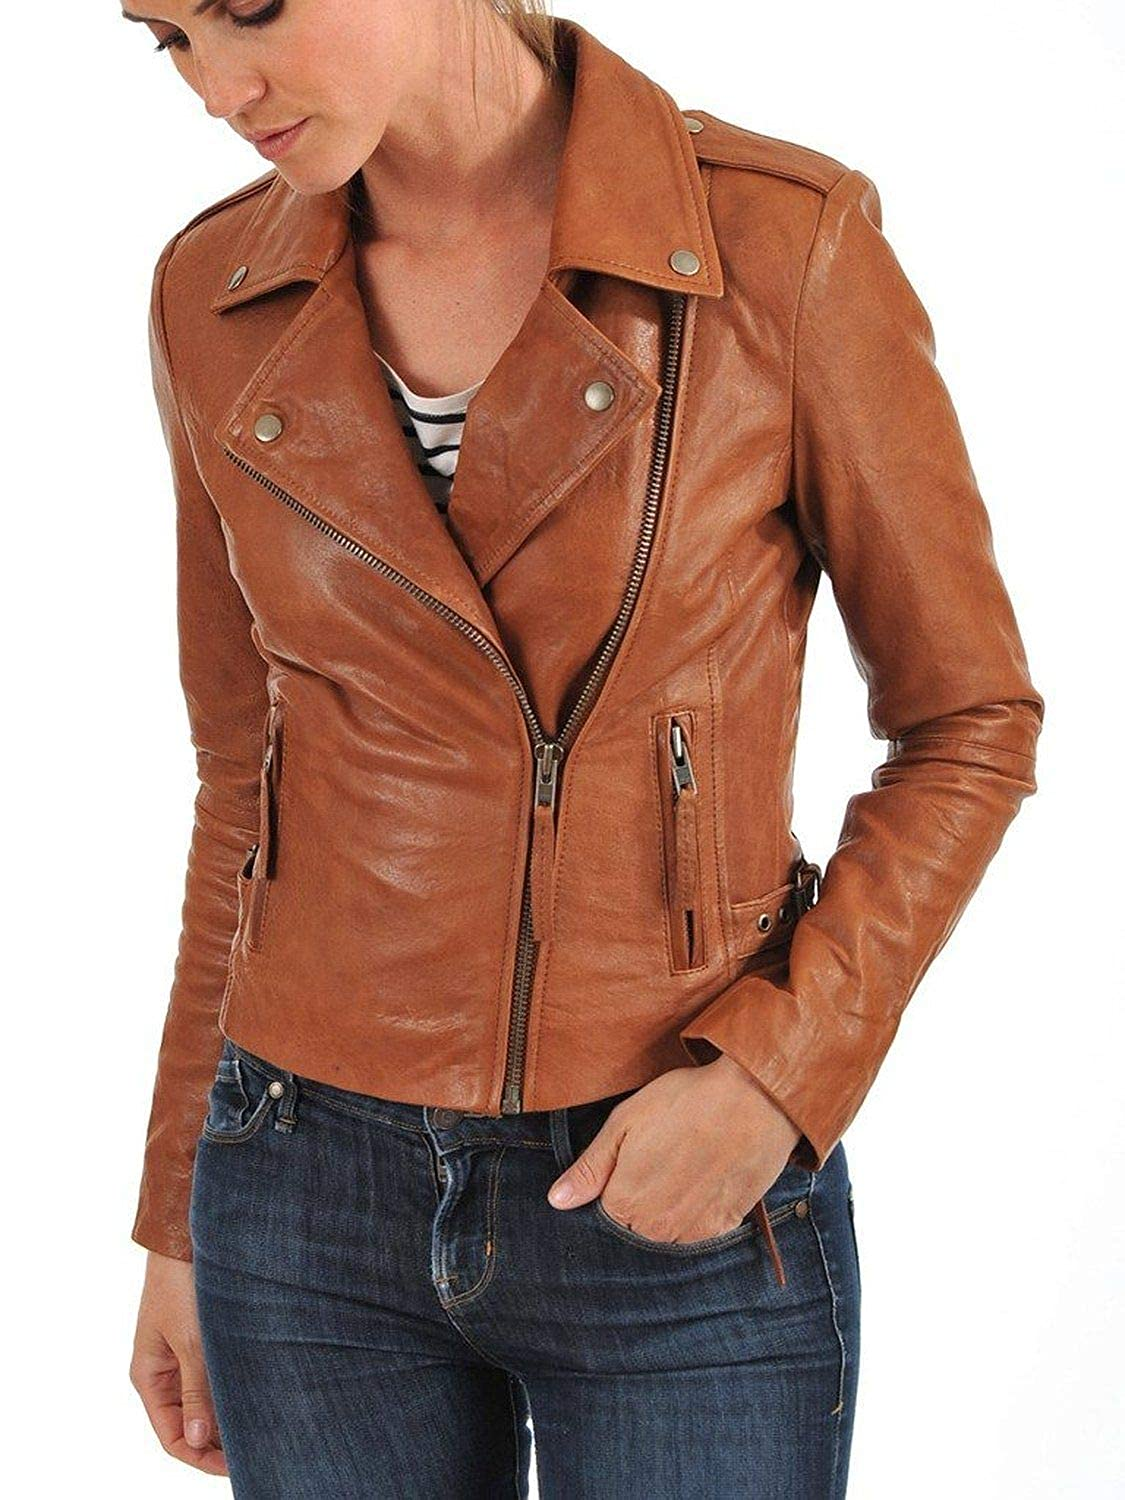 Brown101fc DOLLY LAMB 100% Leather Jacket for Women  Slim Fit & Quilted  Moto, Bomber, Biker Winter Casual Wear